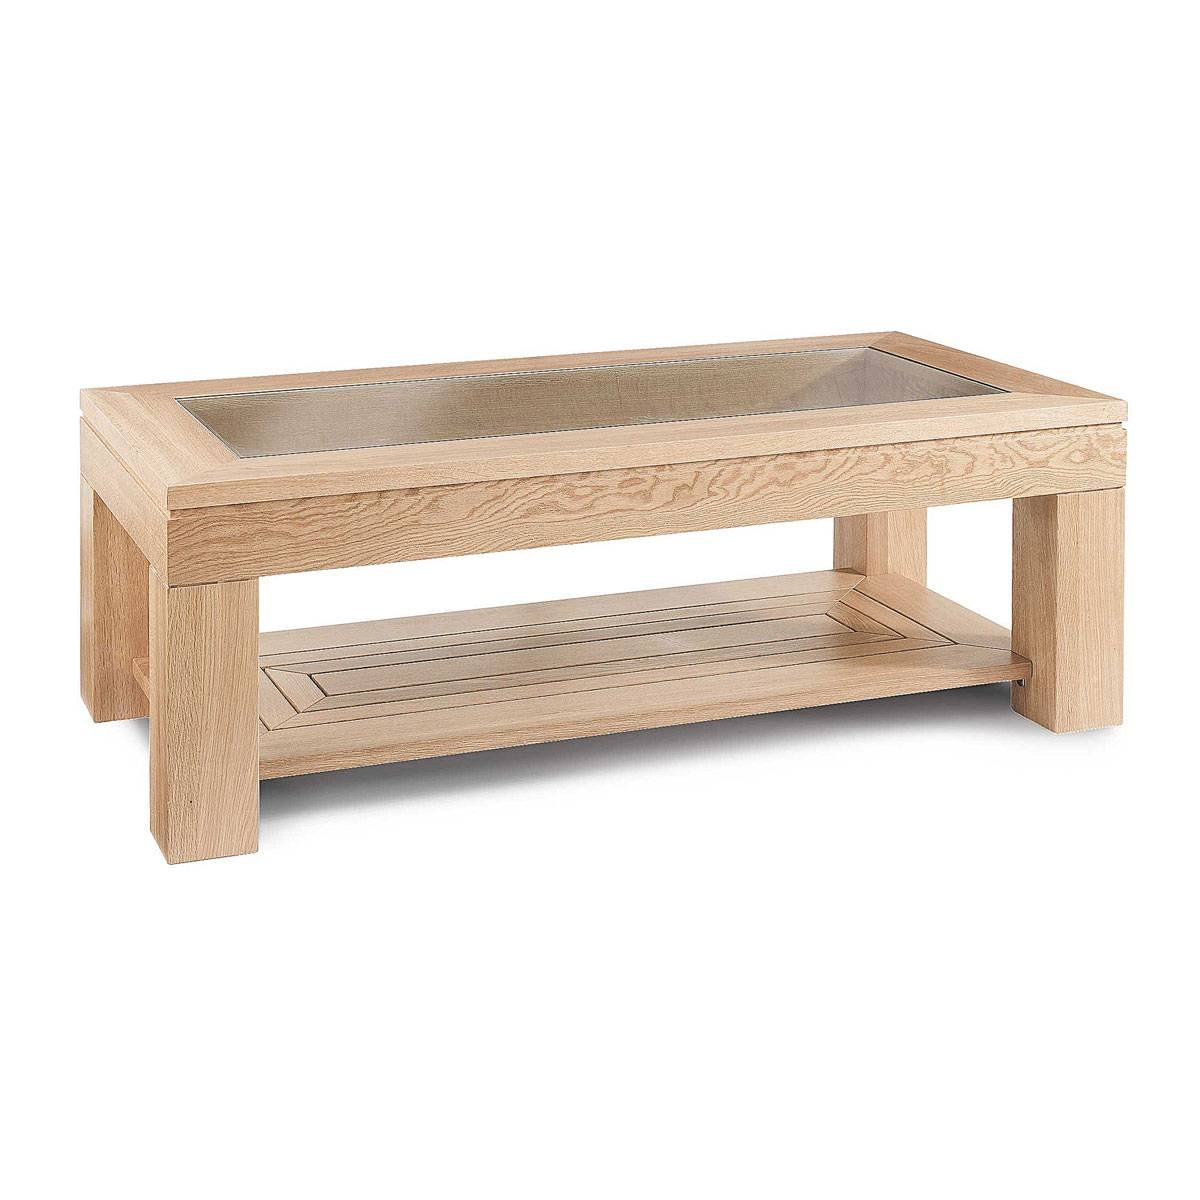 Fascinating Oak Coffee Table With Glass Top About Designing Home with Oak Coffee Table With Glass Top (Image 8 of 15)